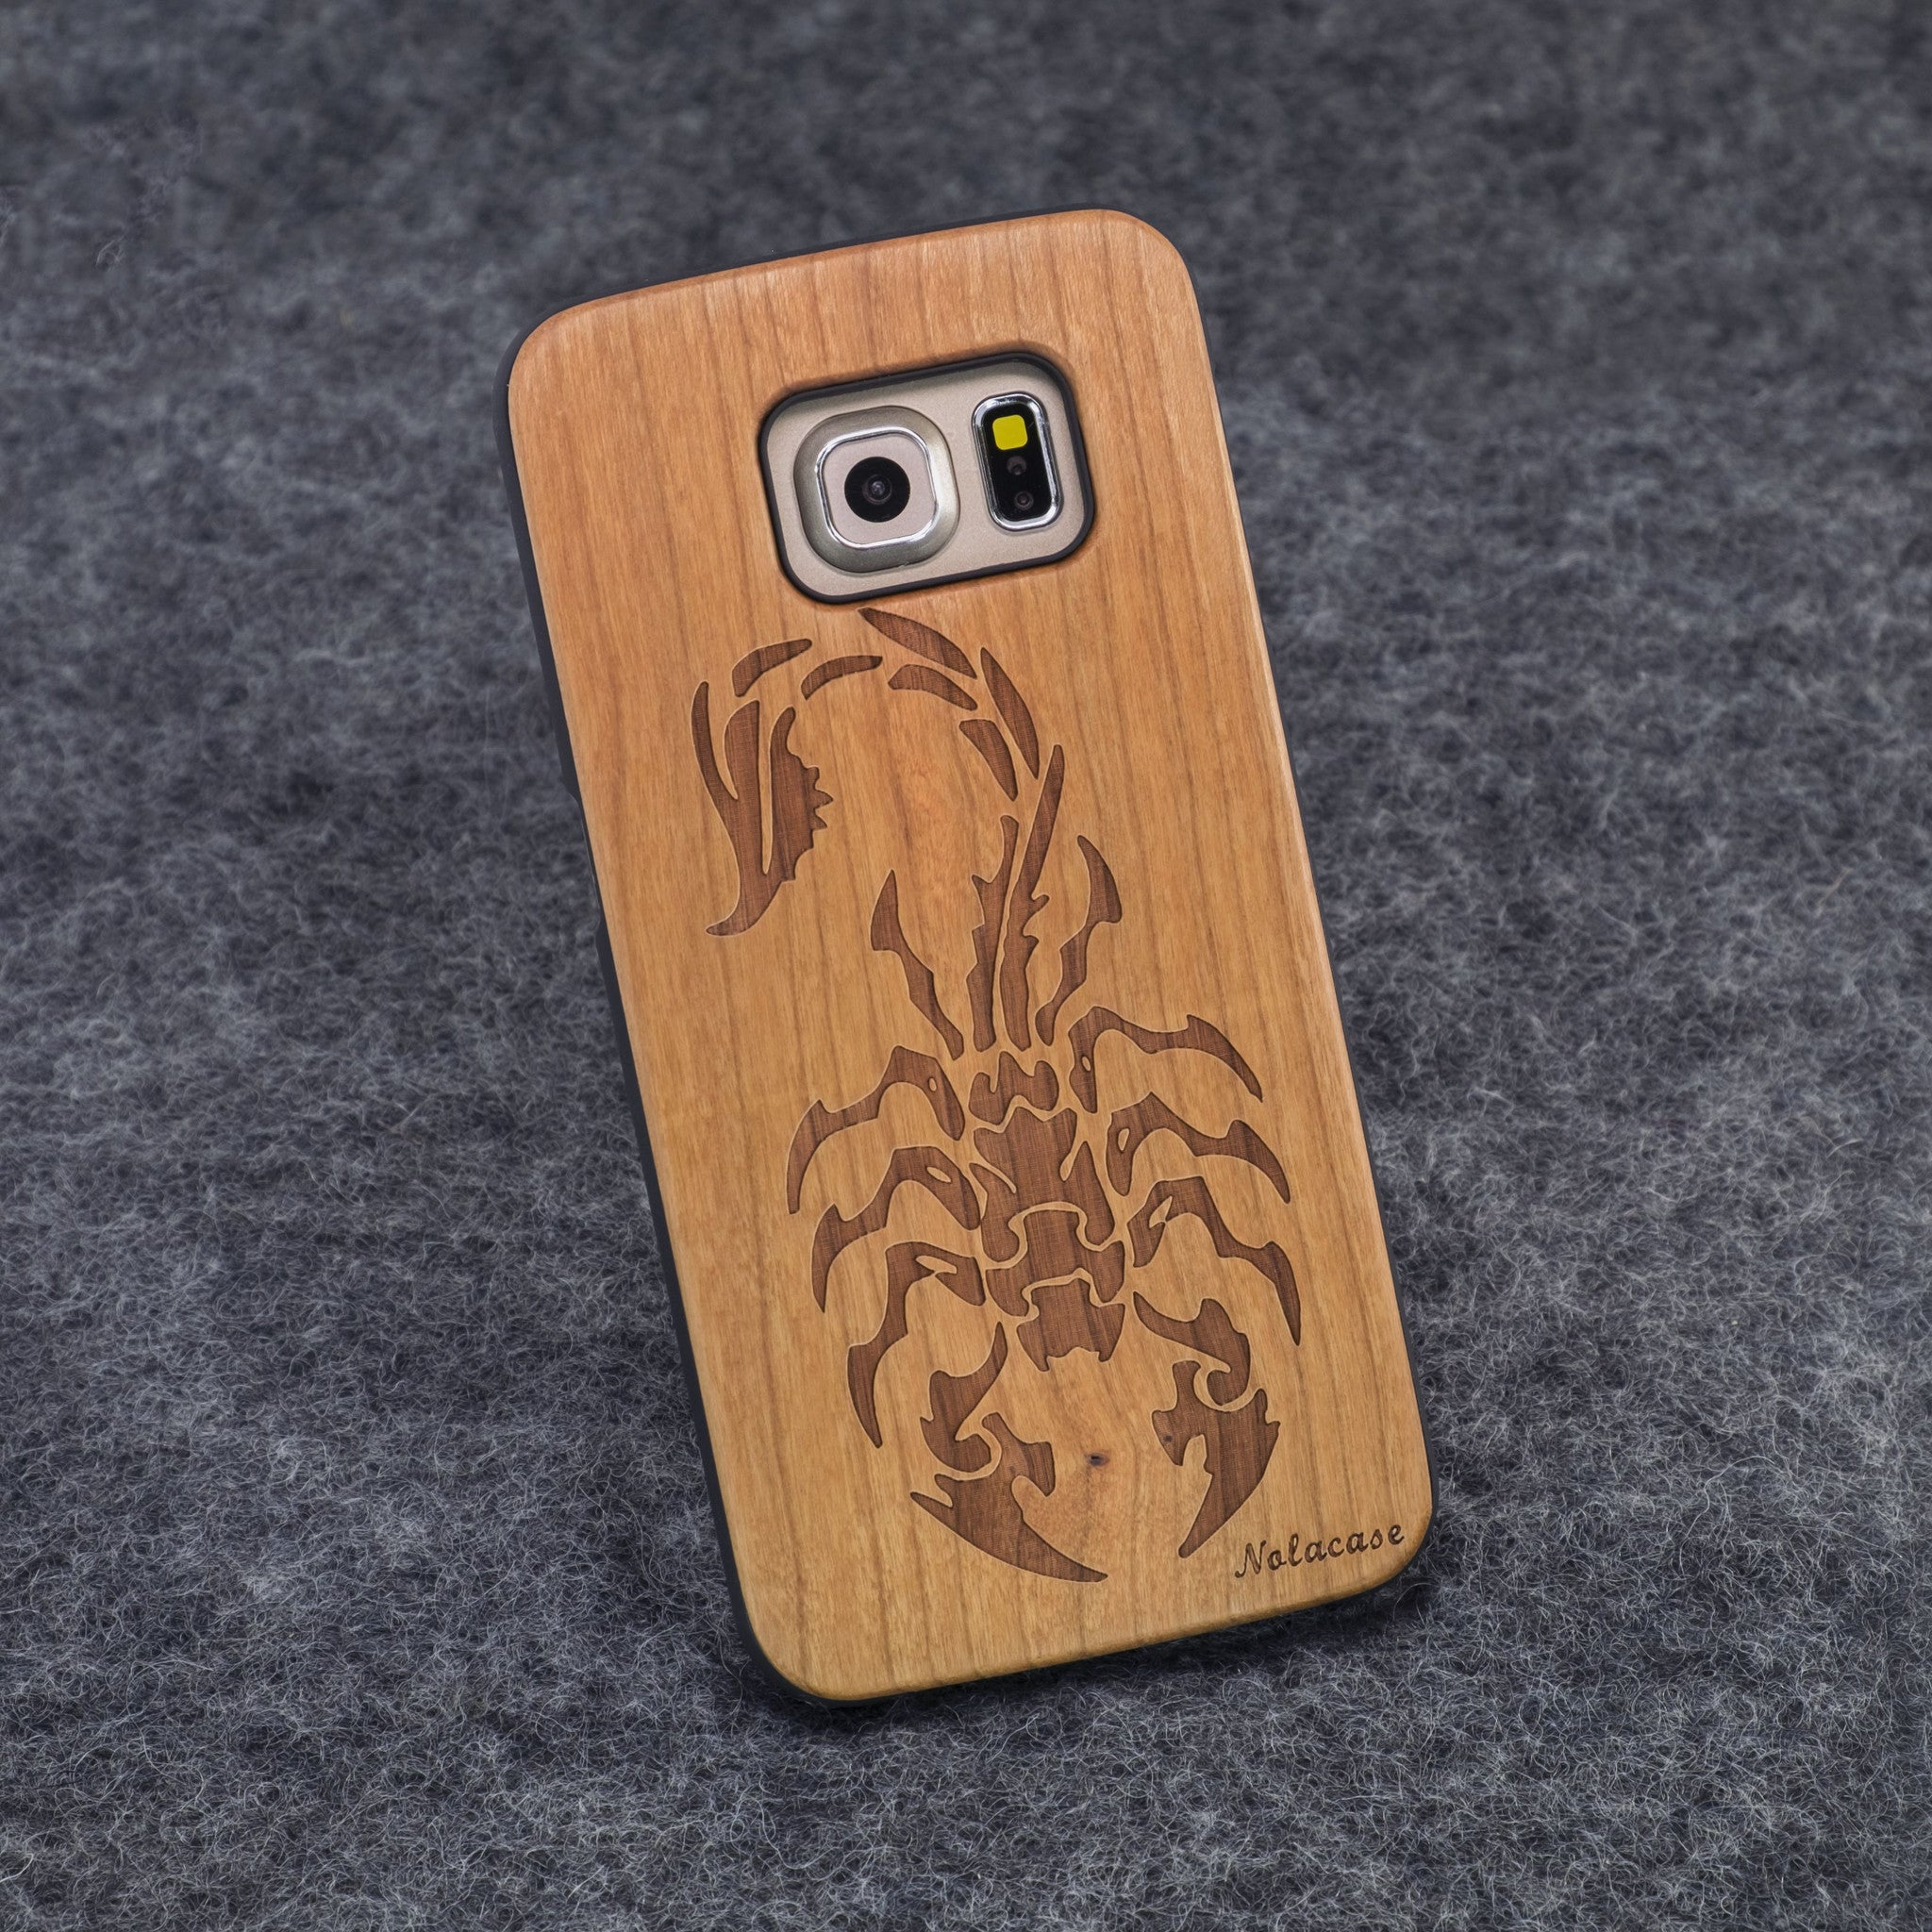 Samsung S6 Edge Scorpion Slim Wood Case - NOLACASE